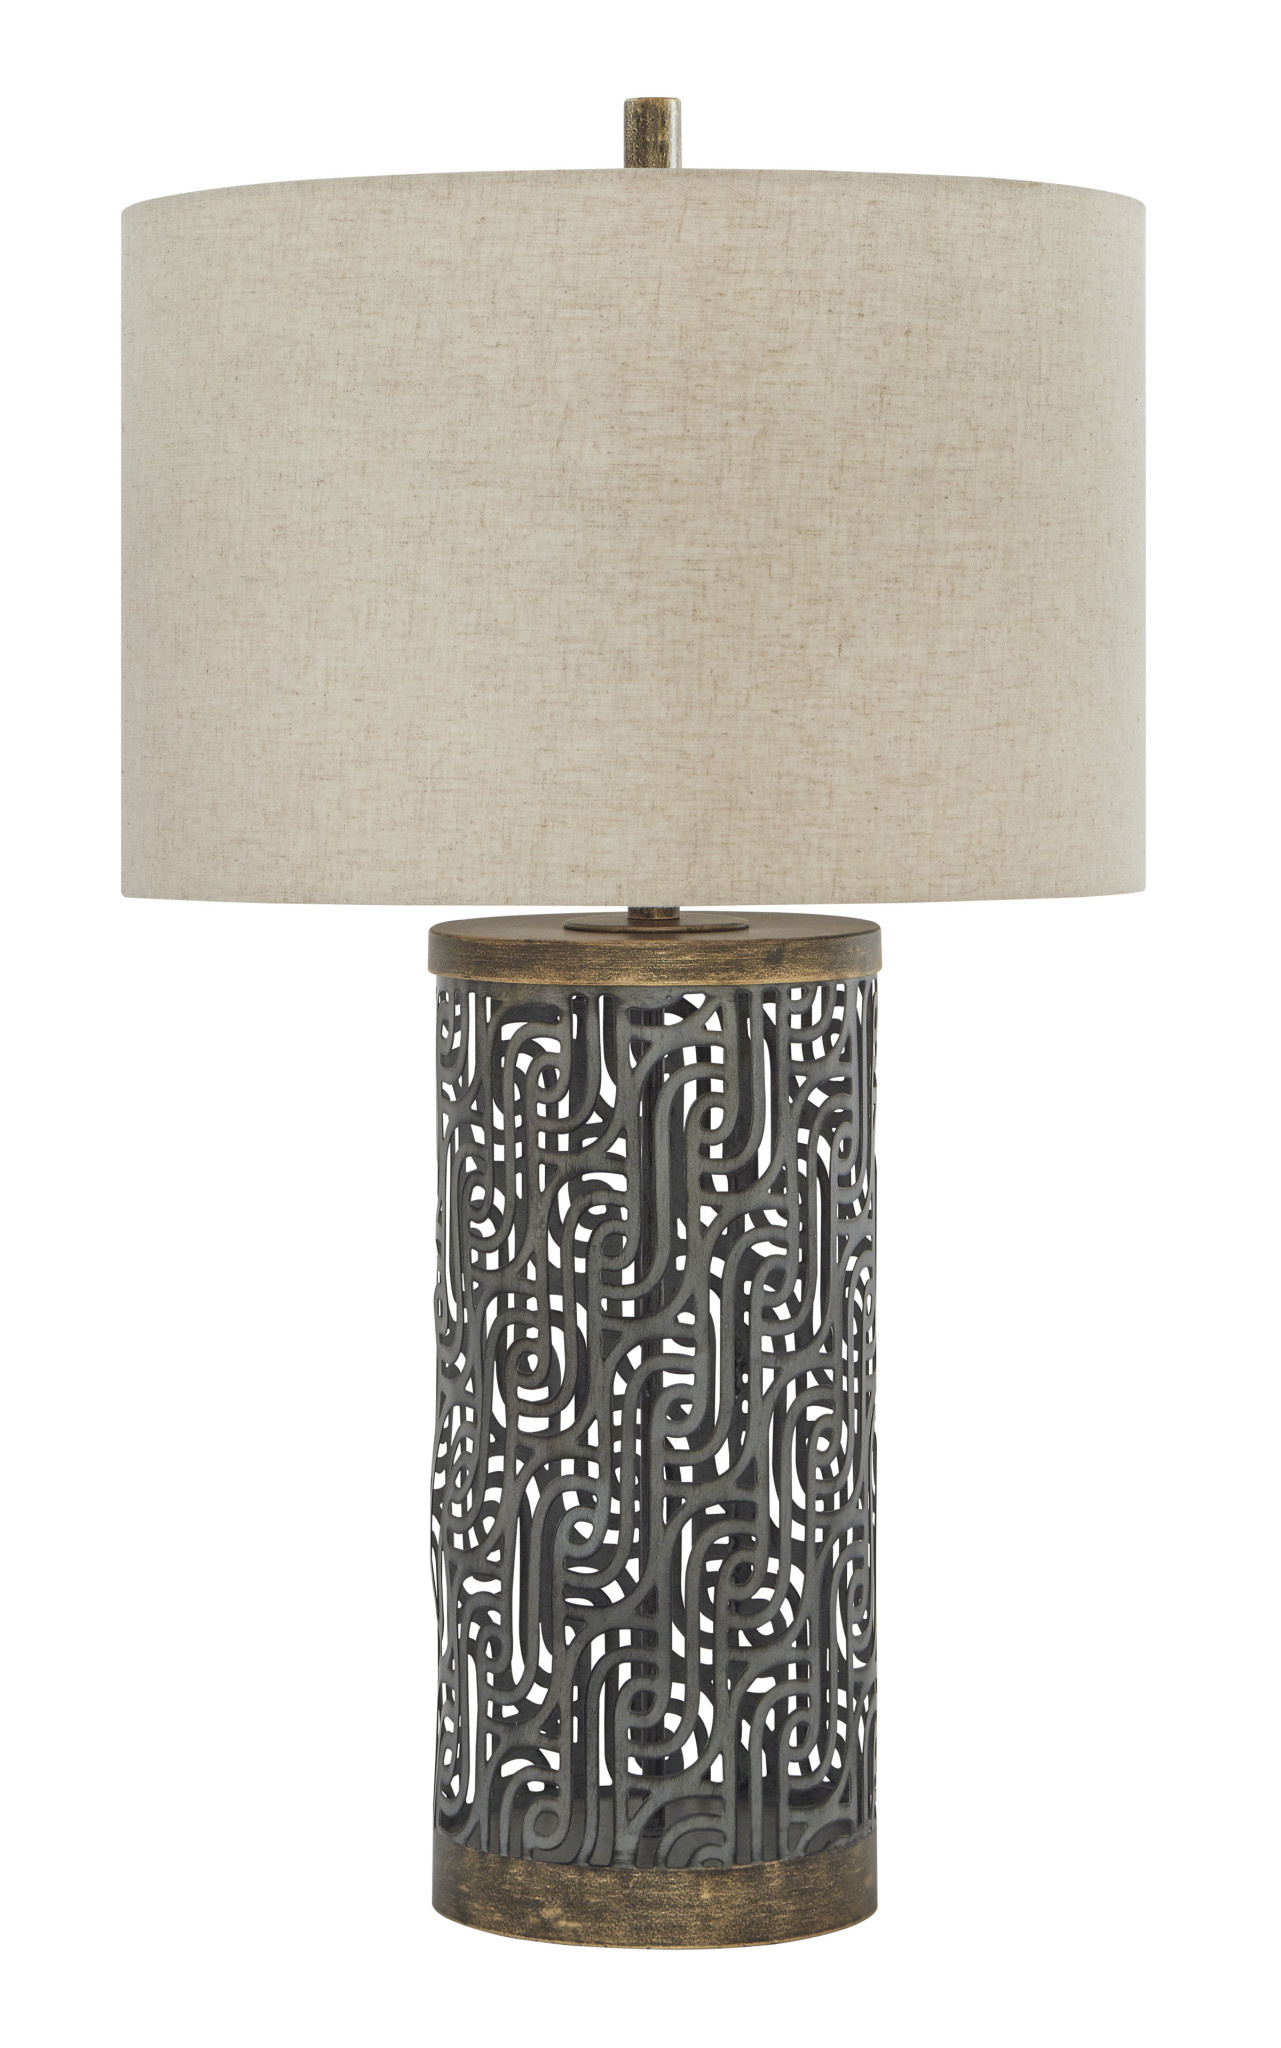 Signature Design Metal Table Lamp Dayo- Gray/Gold Finish- L207364